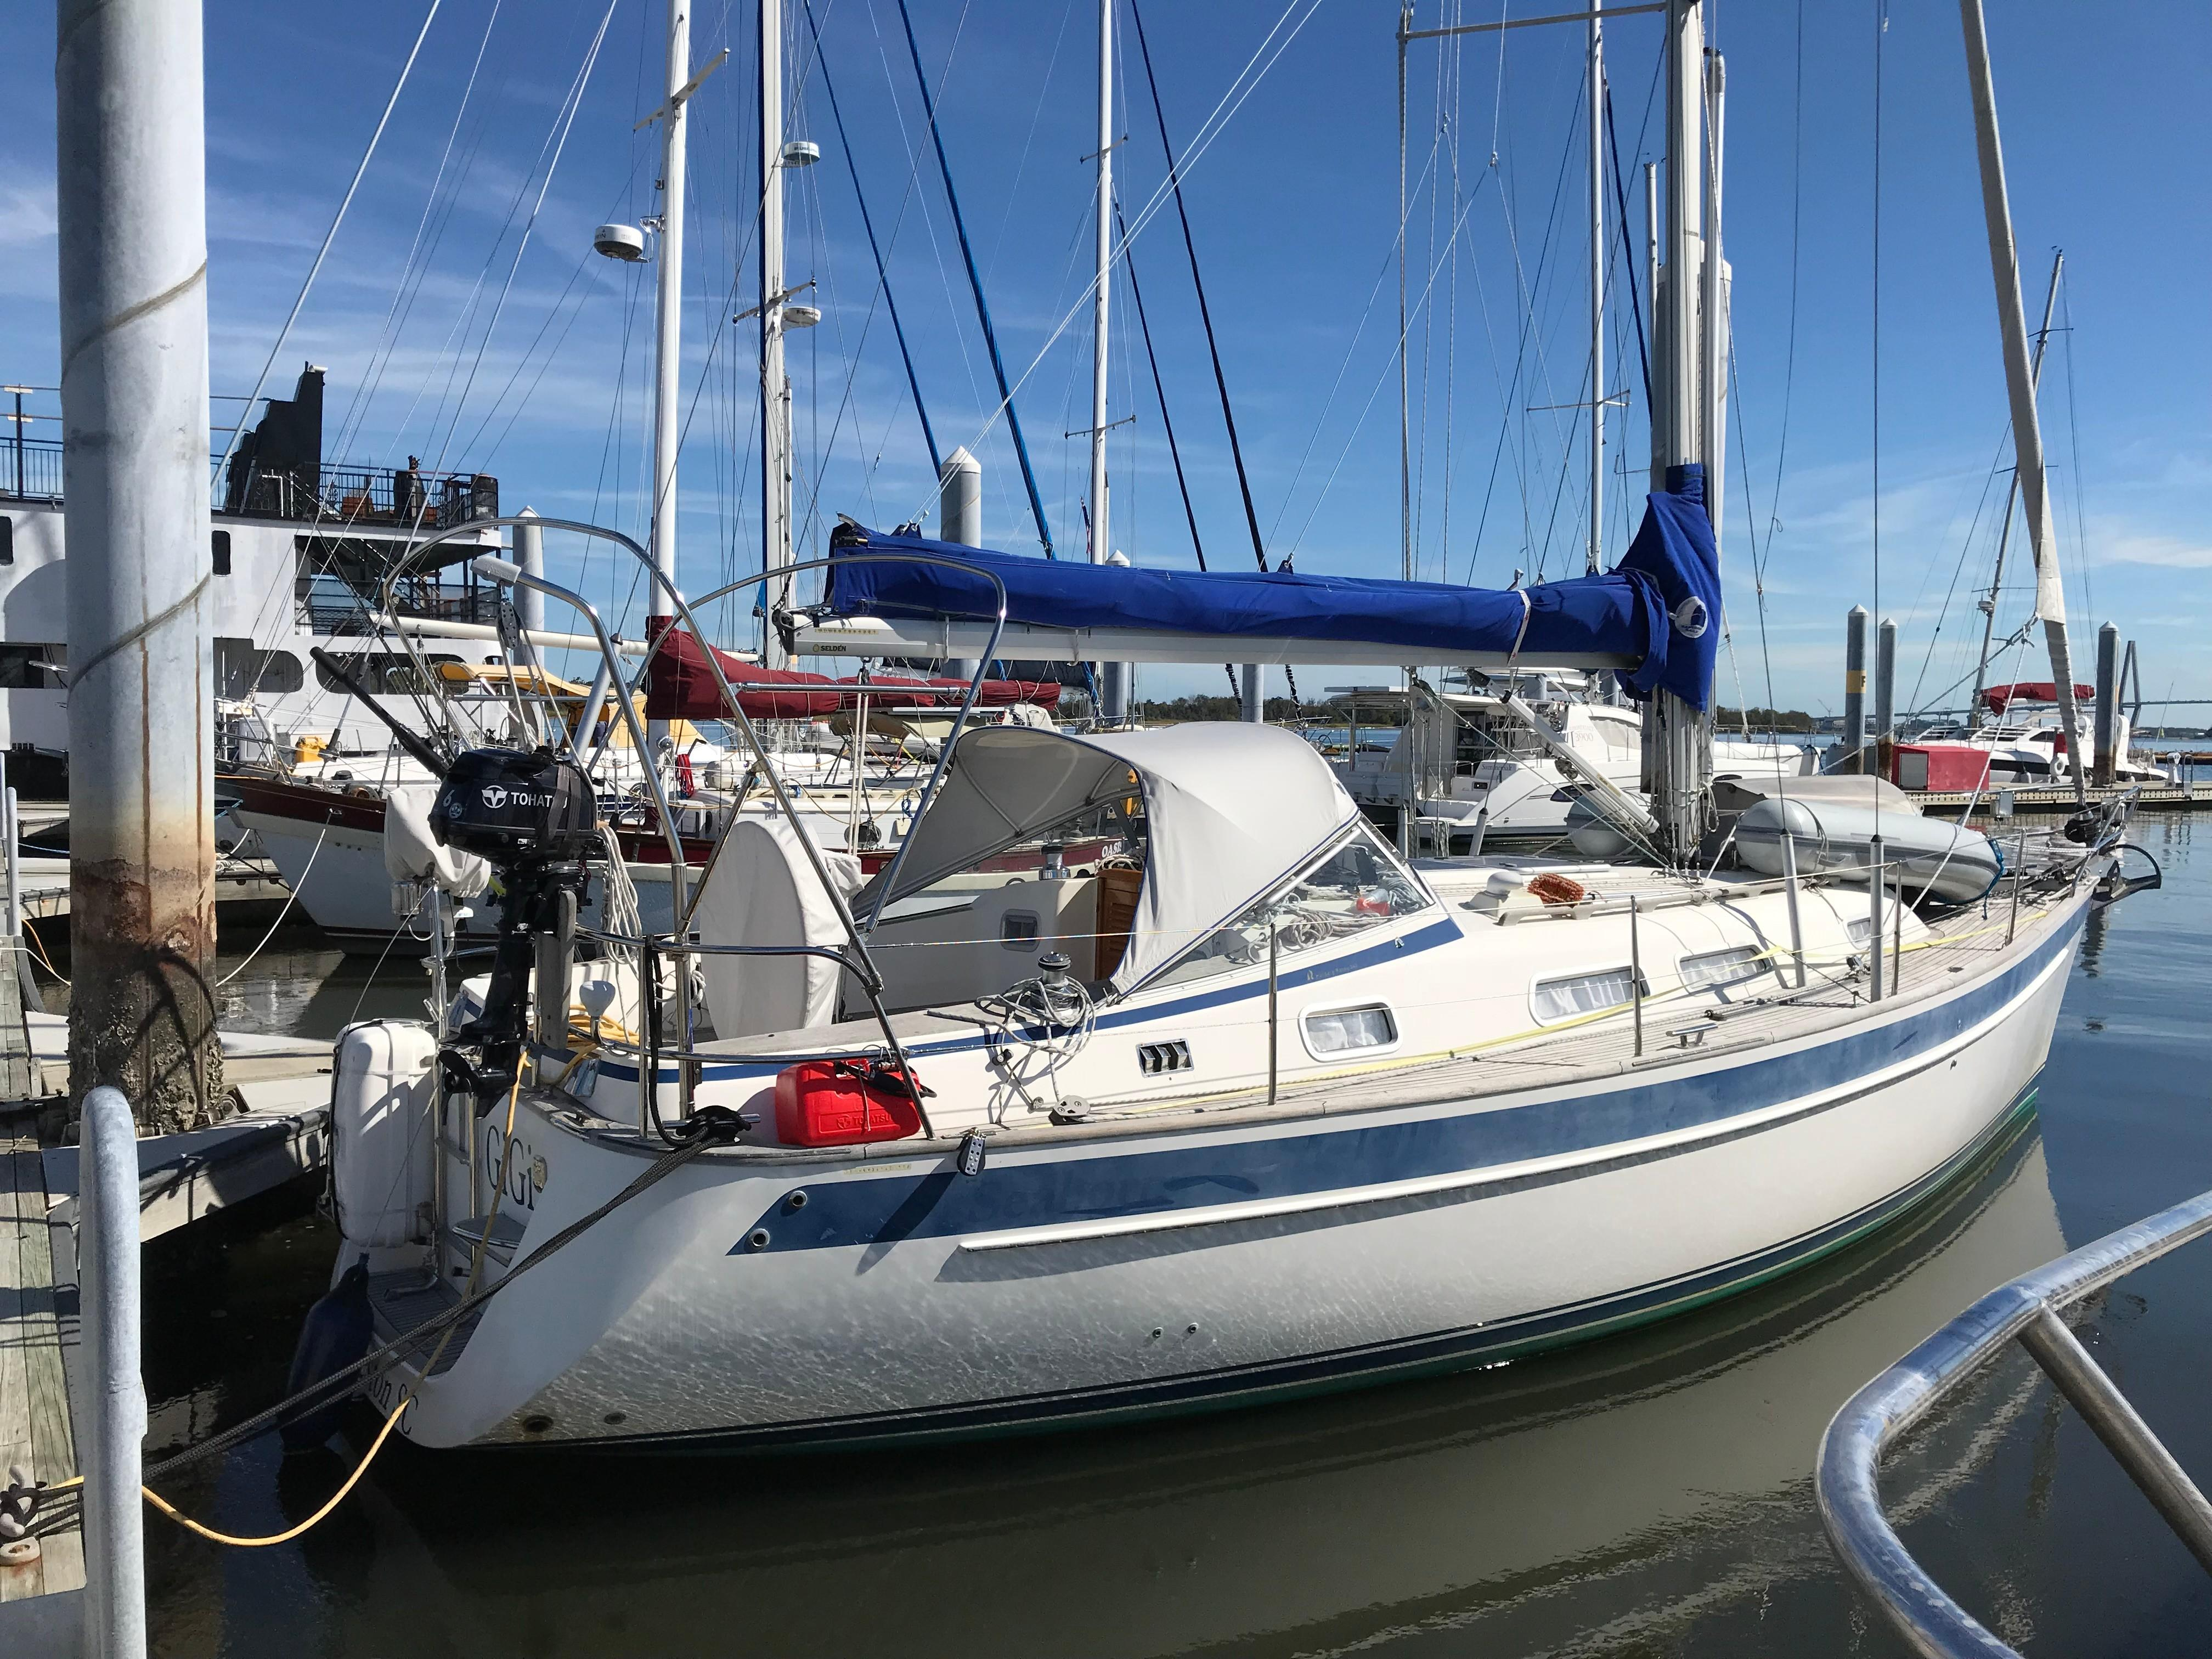 2008 Hallberg-Rassy 342 - Yacht Sales and Services